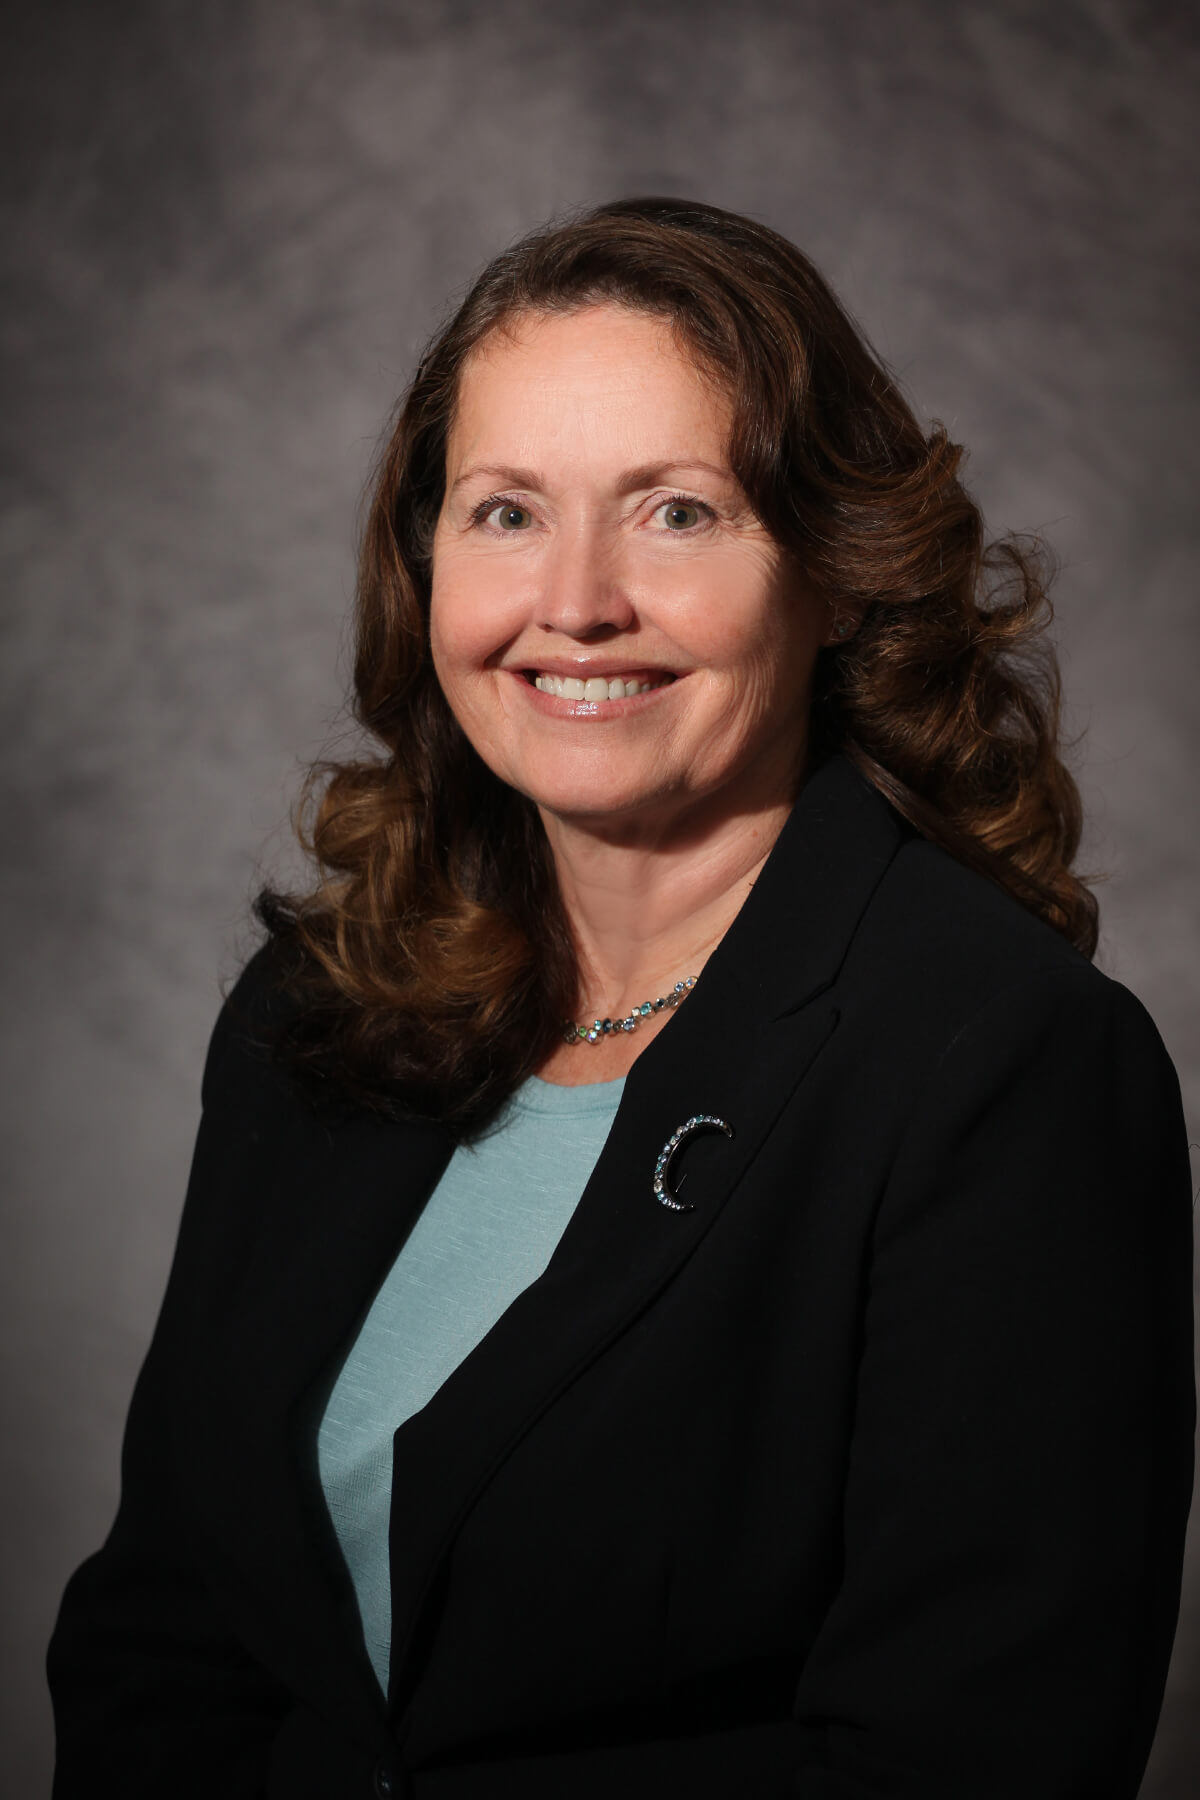 Cindy Nelson - Executive Assistant & Patient Experience Coordinator